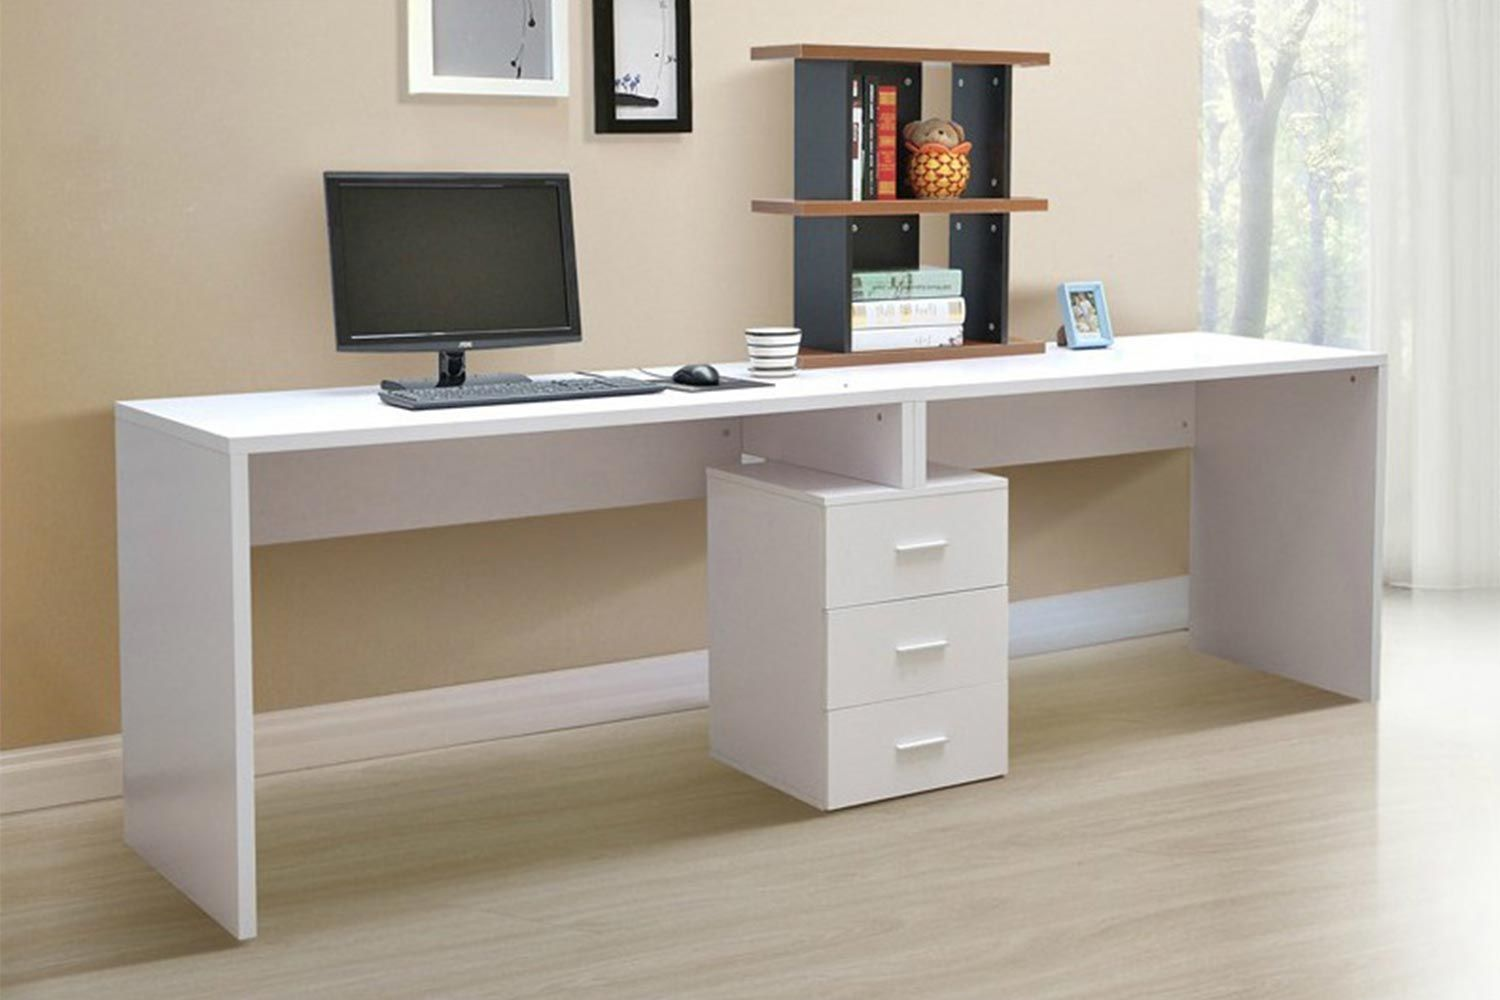 - 30+ Modern Computer Desk And Bookcase Designs Ideas For Your